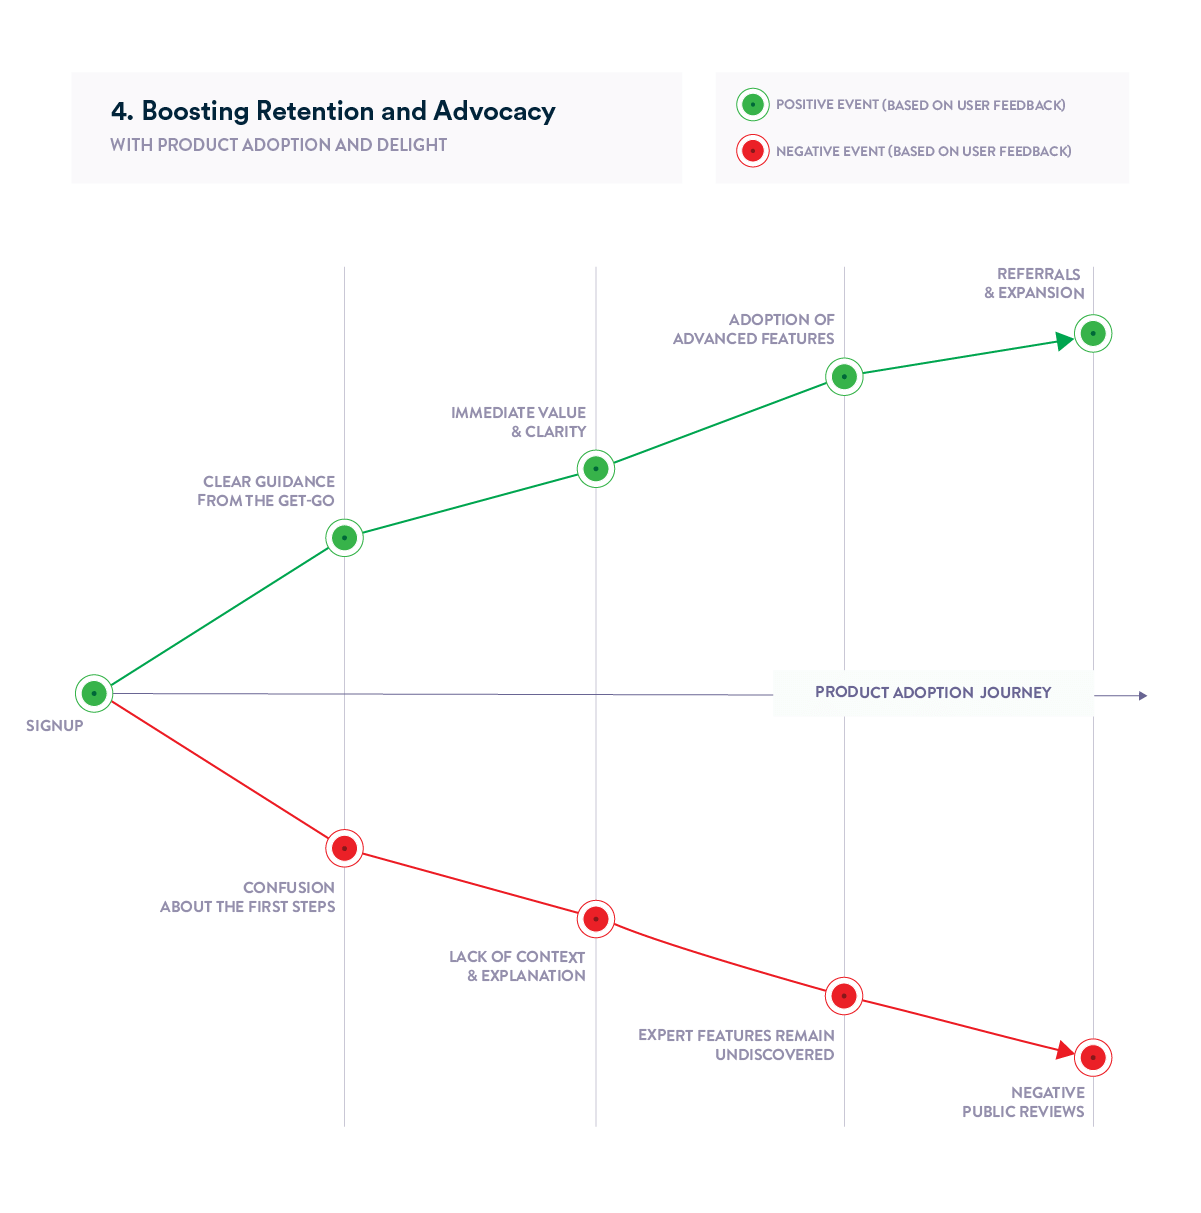 Product Adoption Journey chart - customer retention and delight